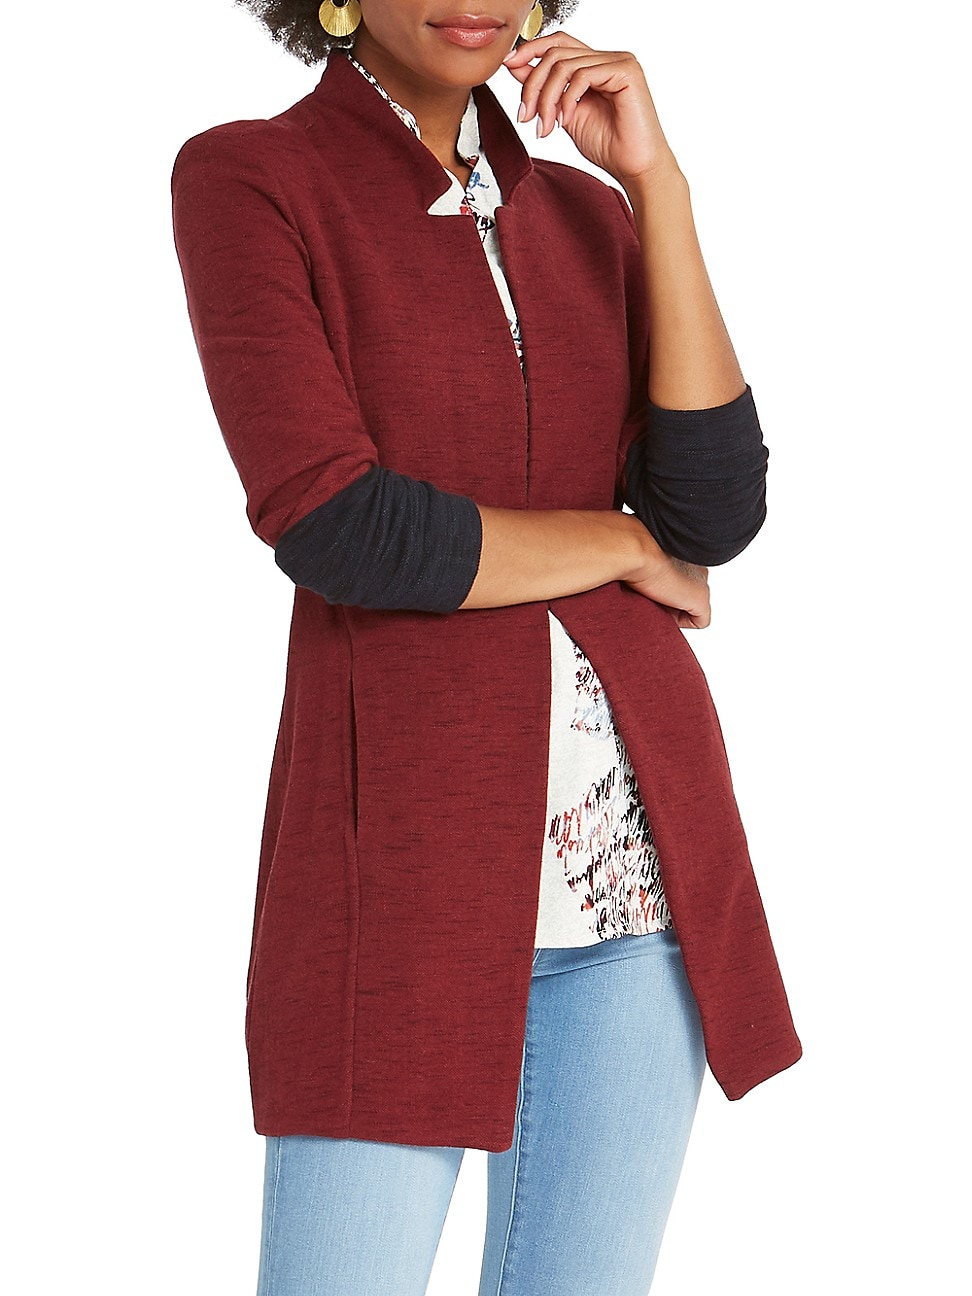 Nic + Zoe WOMEN'S COLOR BLOCK ME JACKET